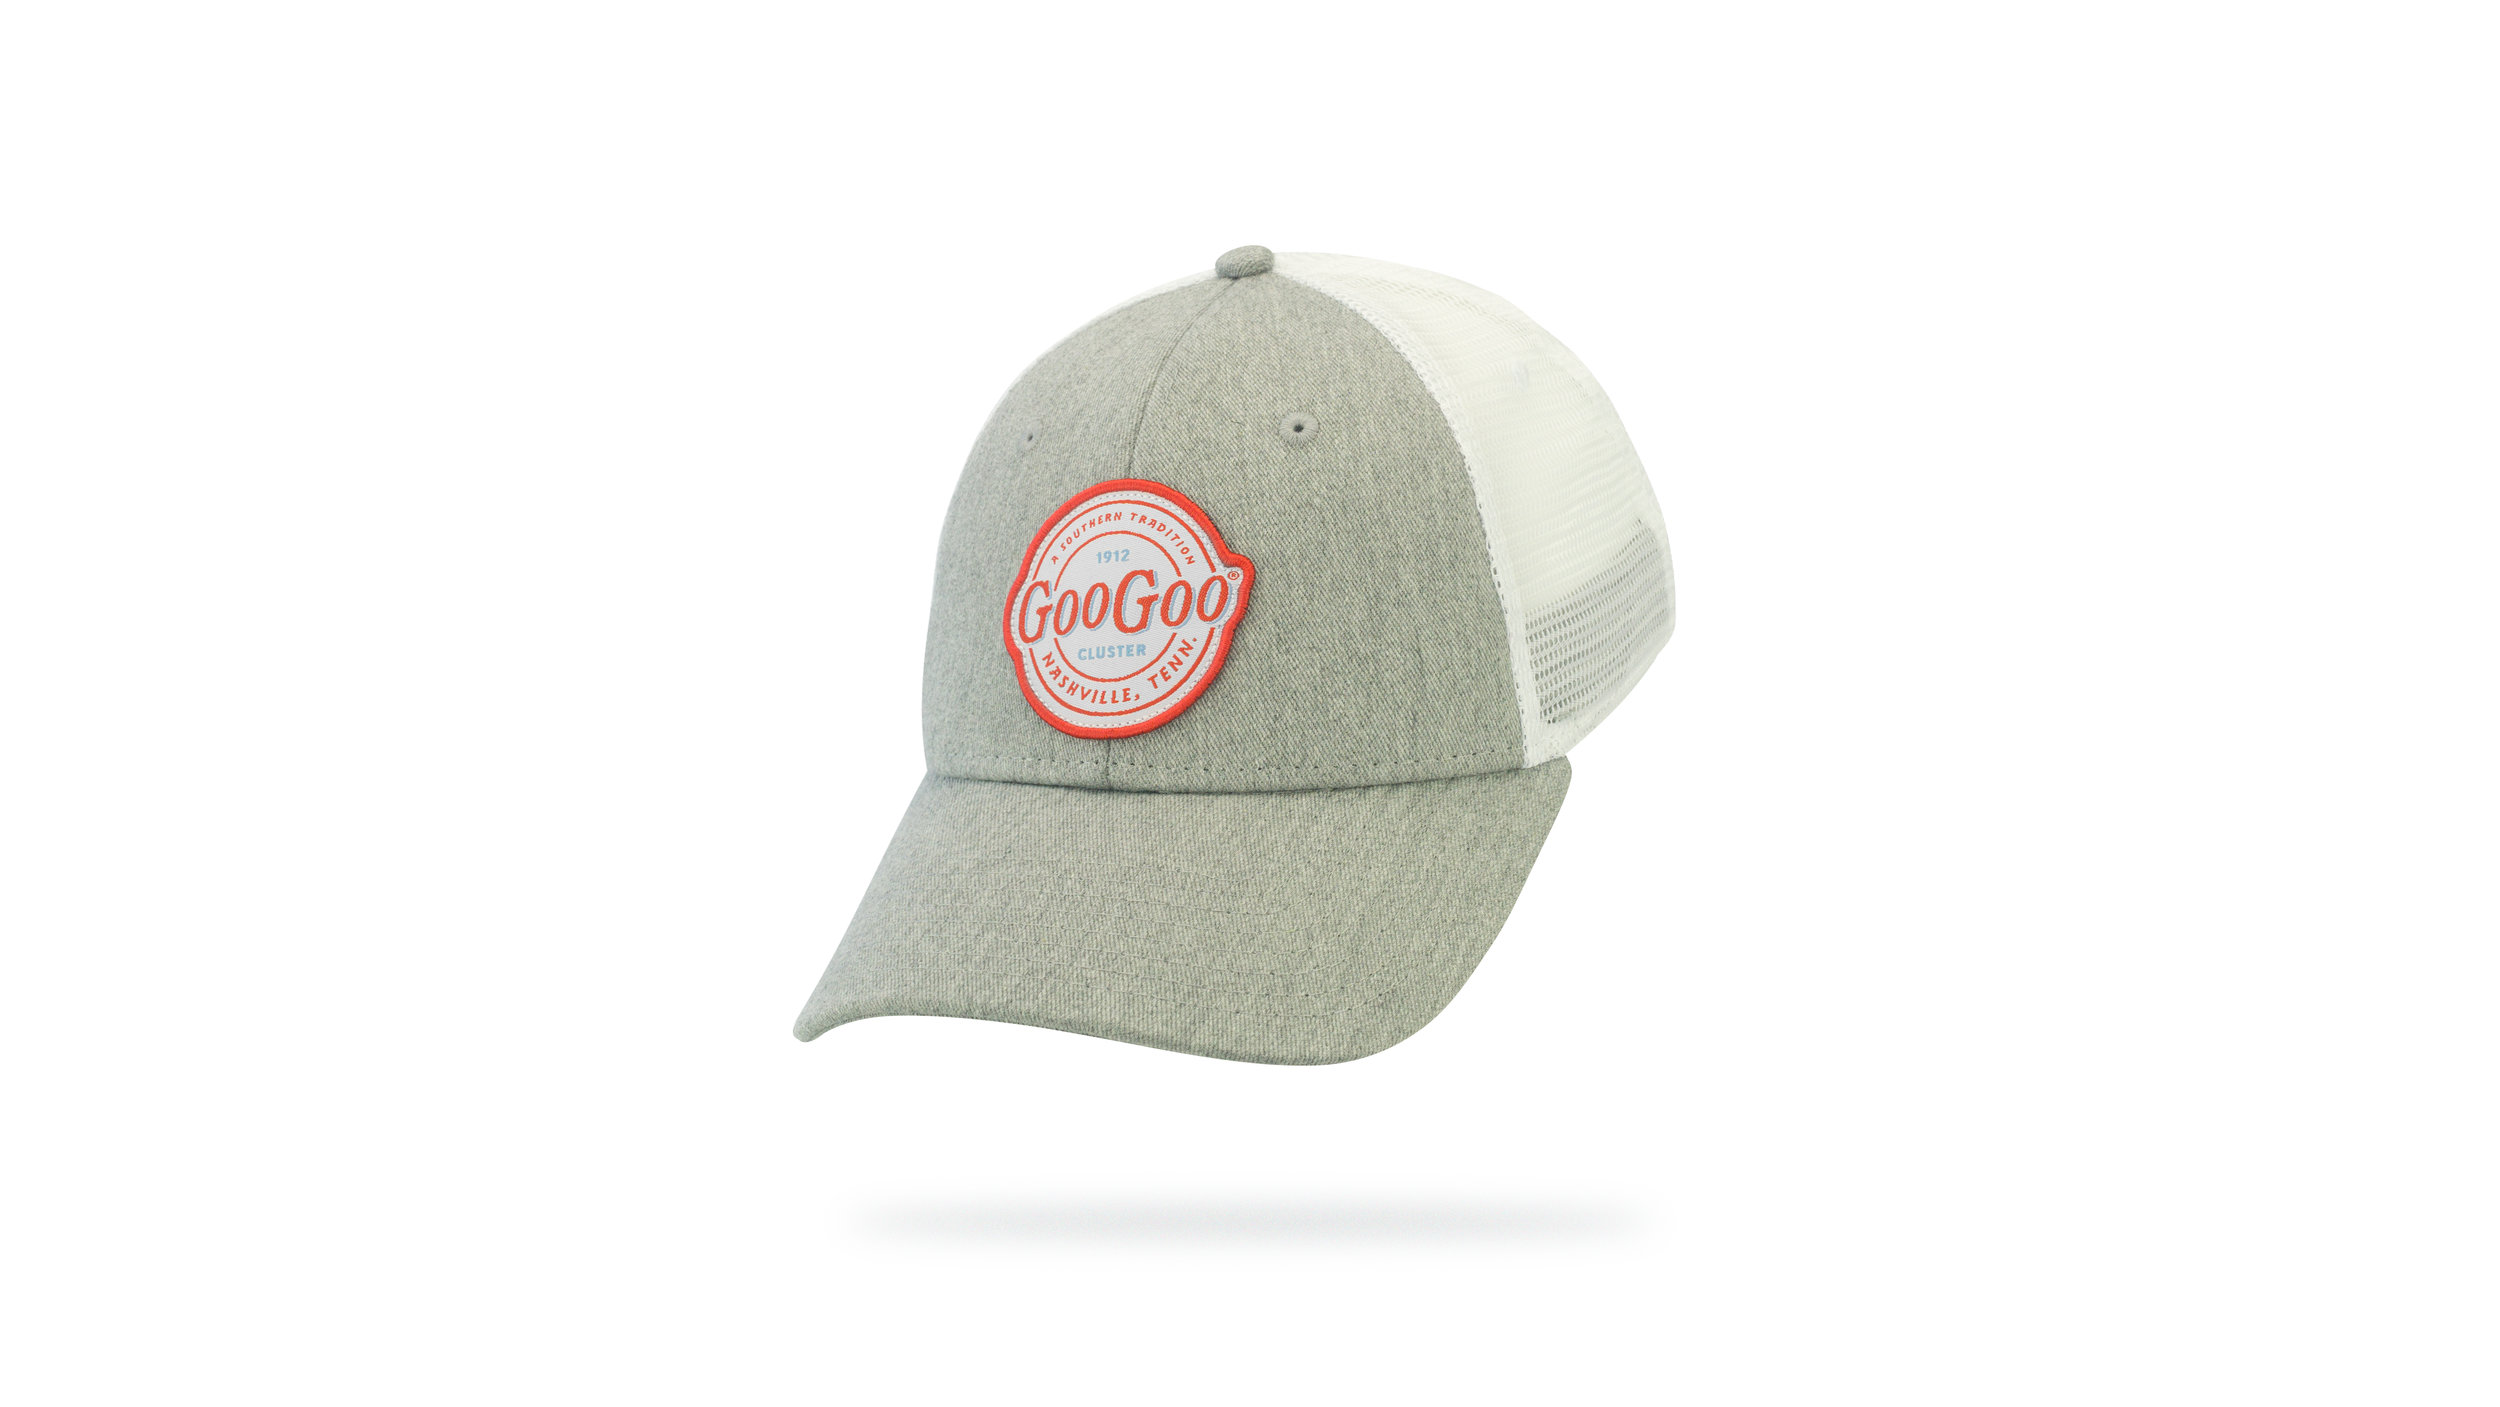 Featured Hat: STYLE IV - Vintage Trucker Cap w/ Woven Label Applique & Heather Twill front panel/visor